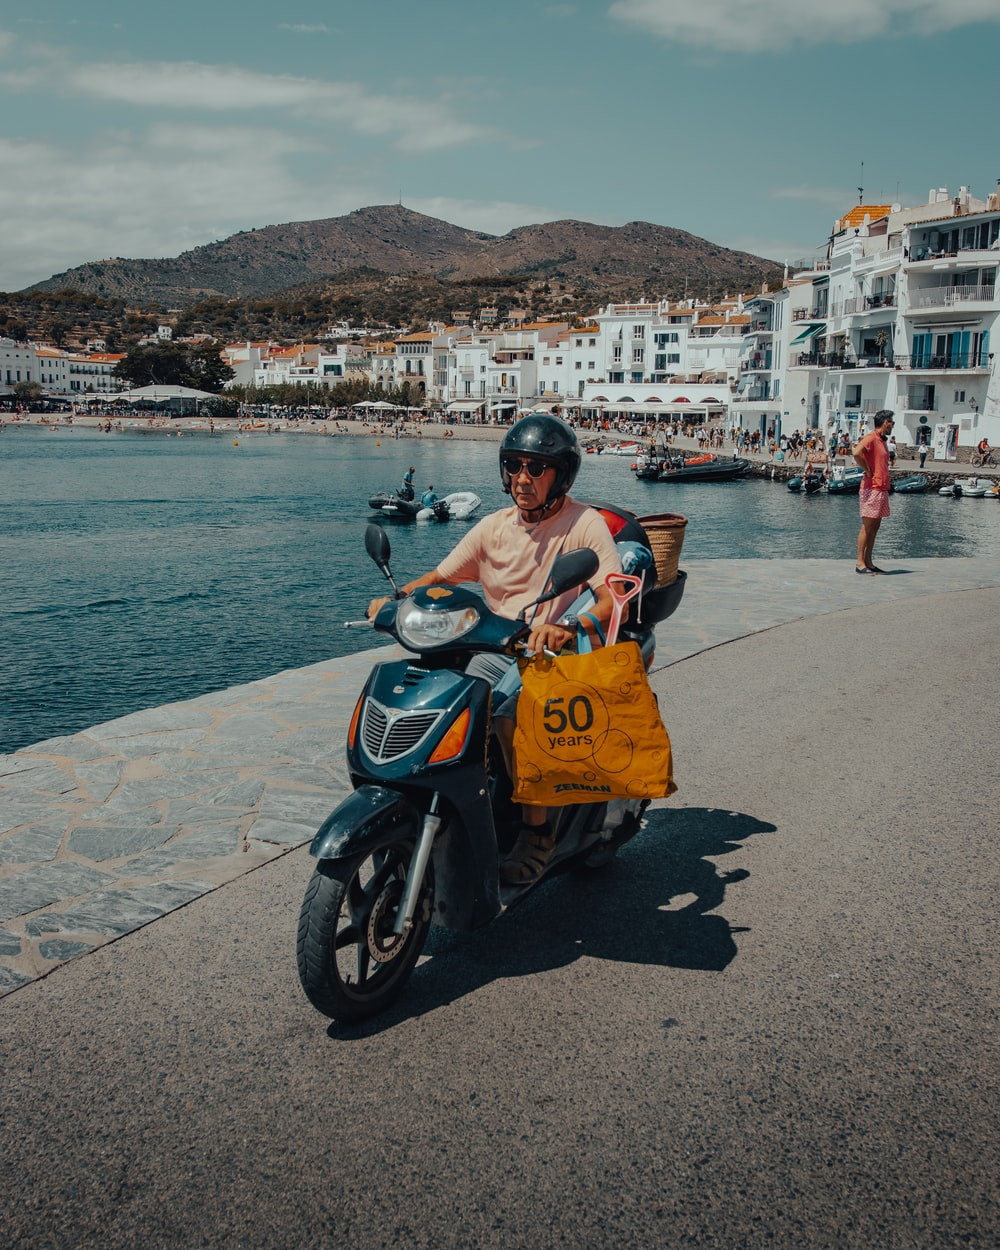 woman in orange dress sitting on black motor scooter near body of water during daytime